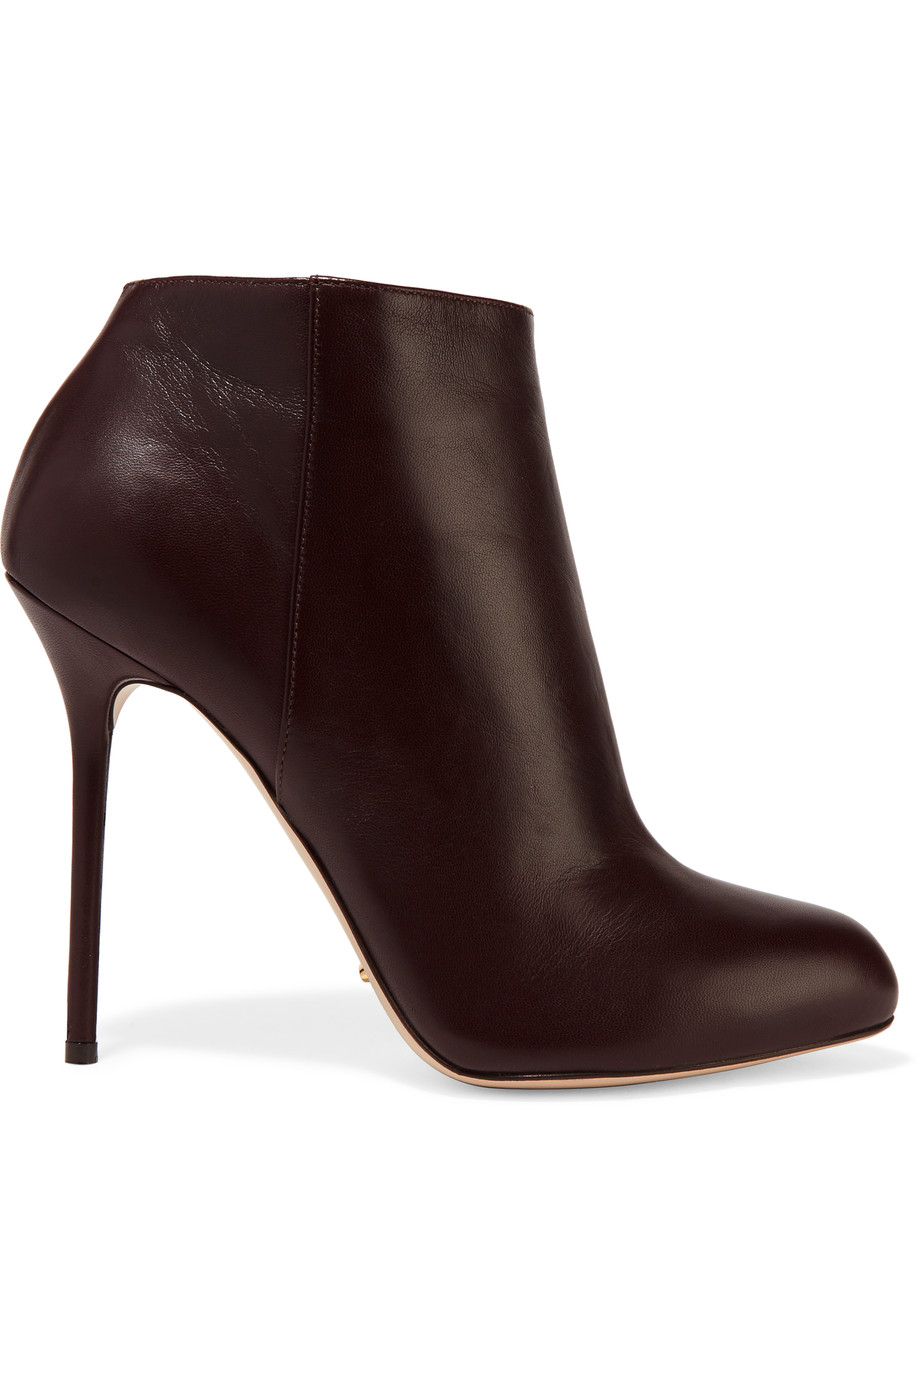 Sergio Rossi Leathers Leather ankle boots